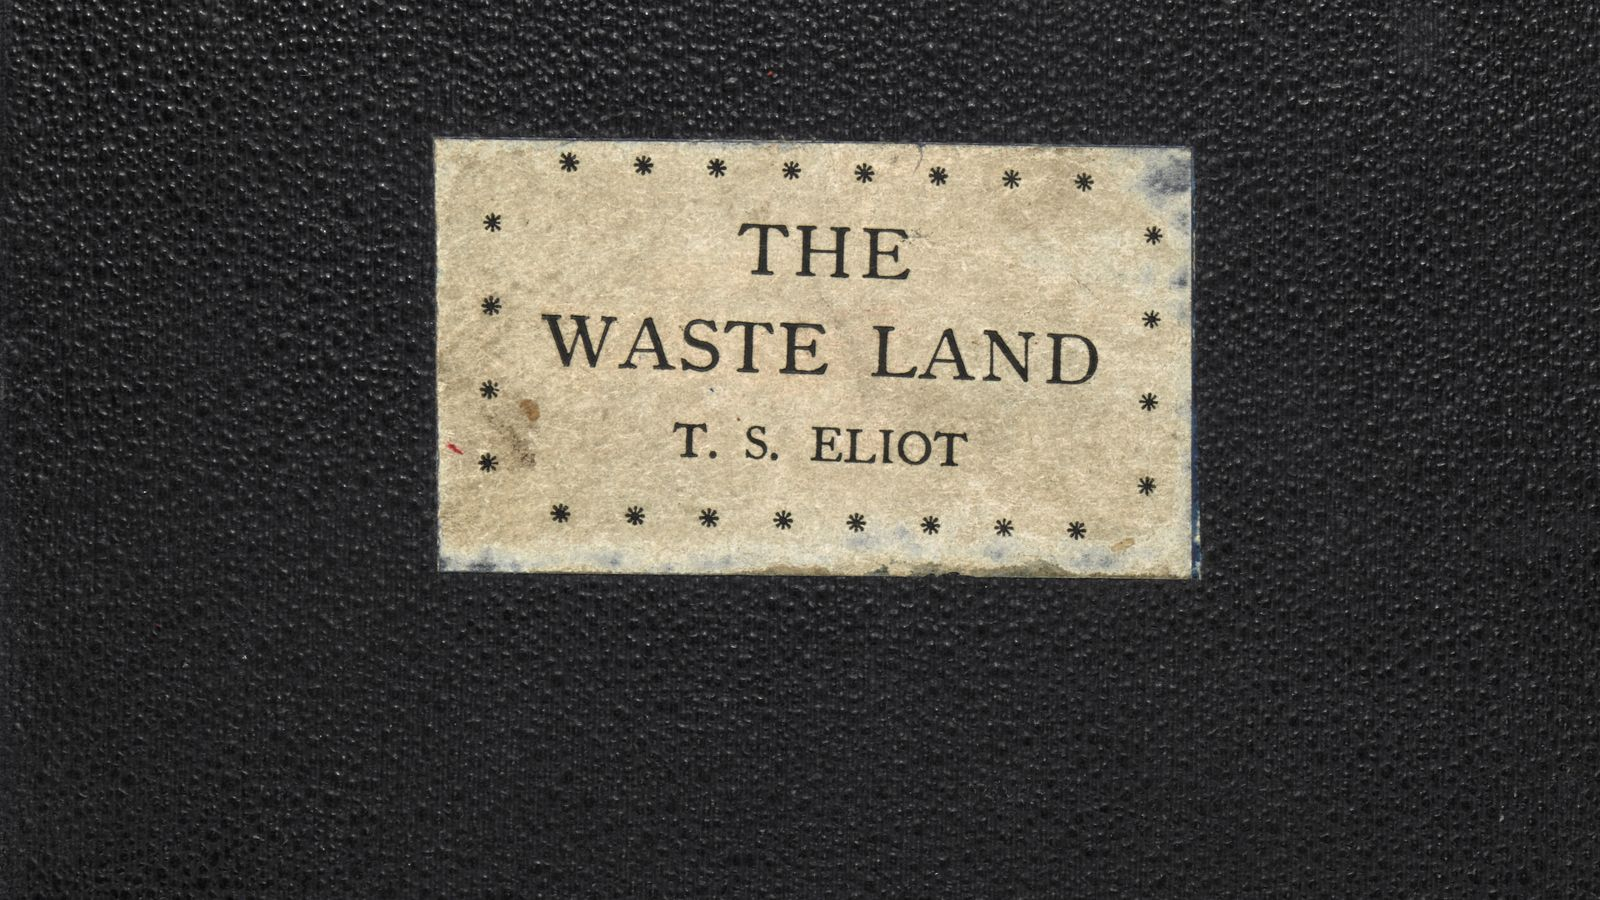 The Waste Land was radical in both style and substance. Roz Kaveney examines the modernist devices, cultural influences and literary collaborations that shaped this landmark poem.